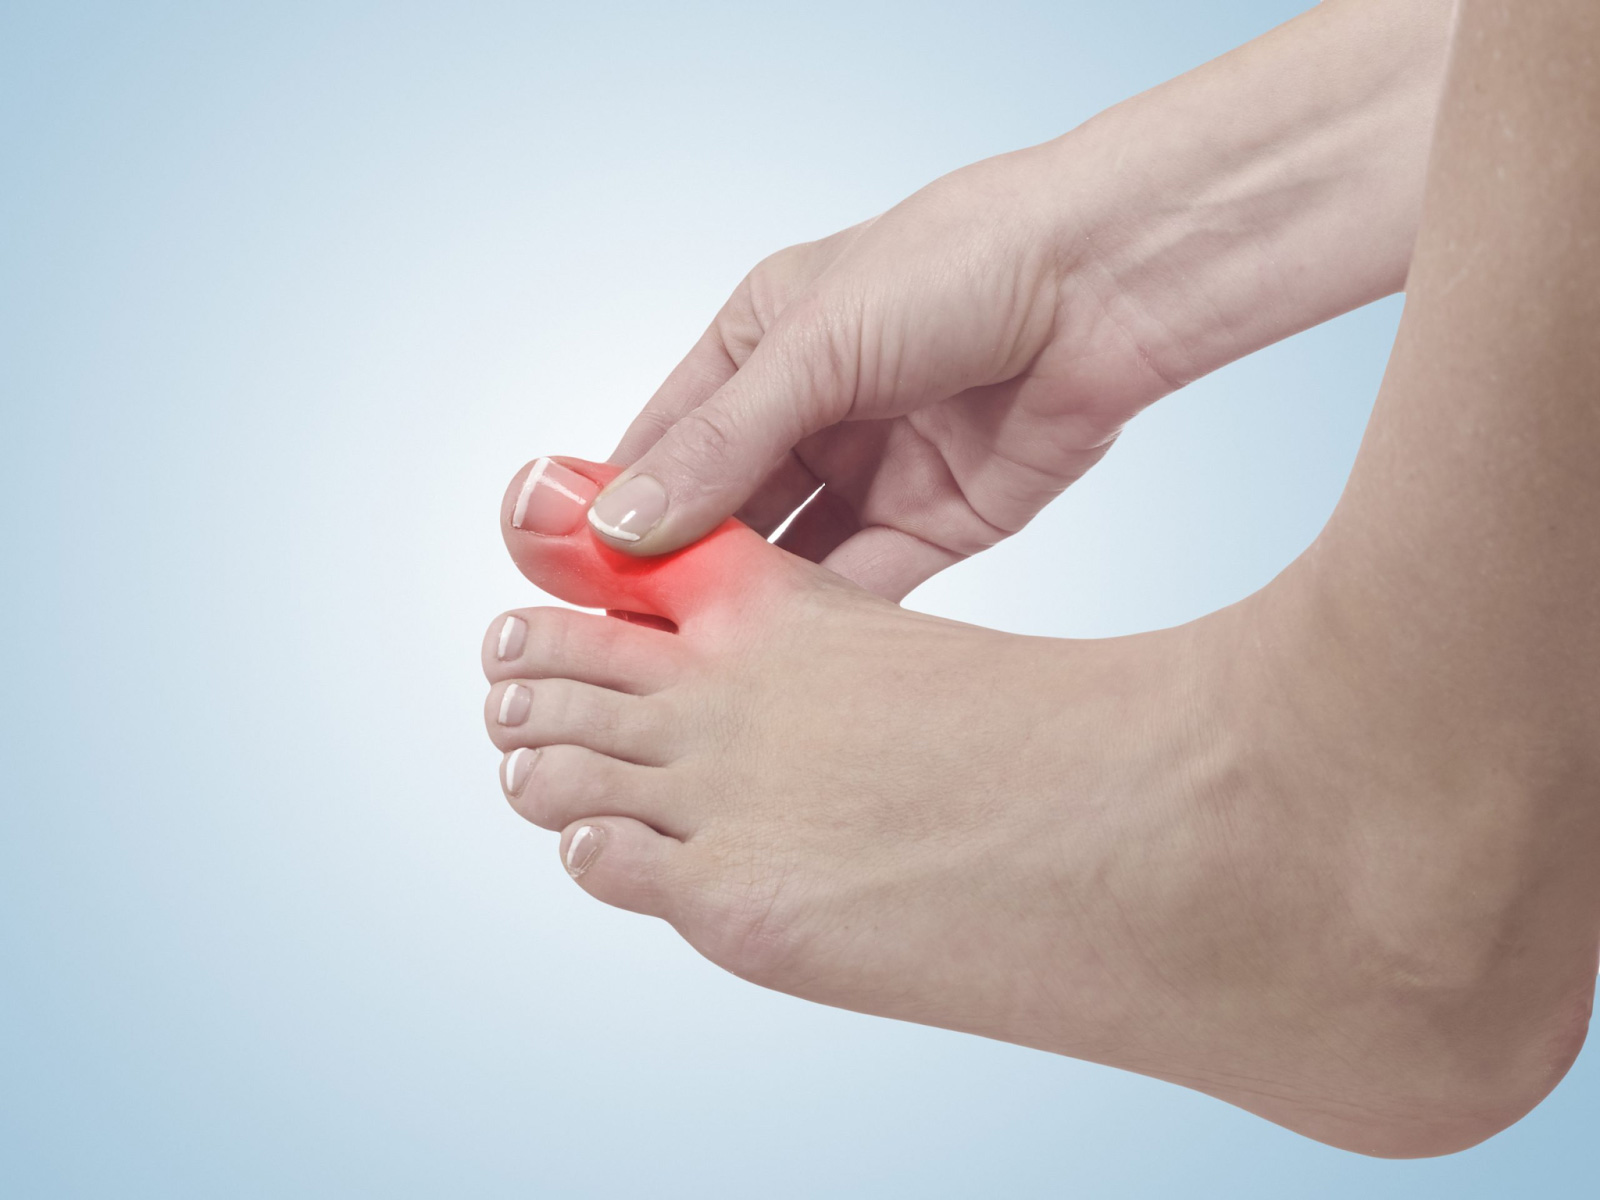 draining the blood from under the toenail